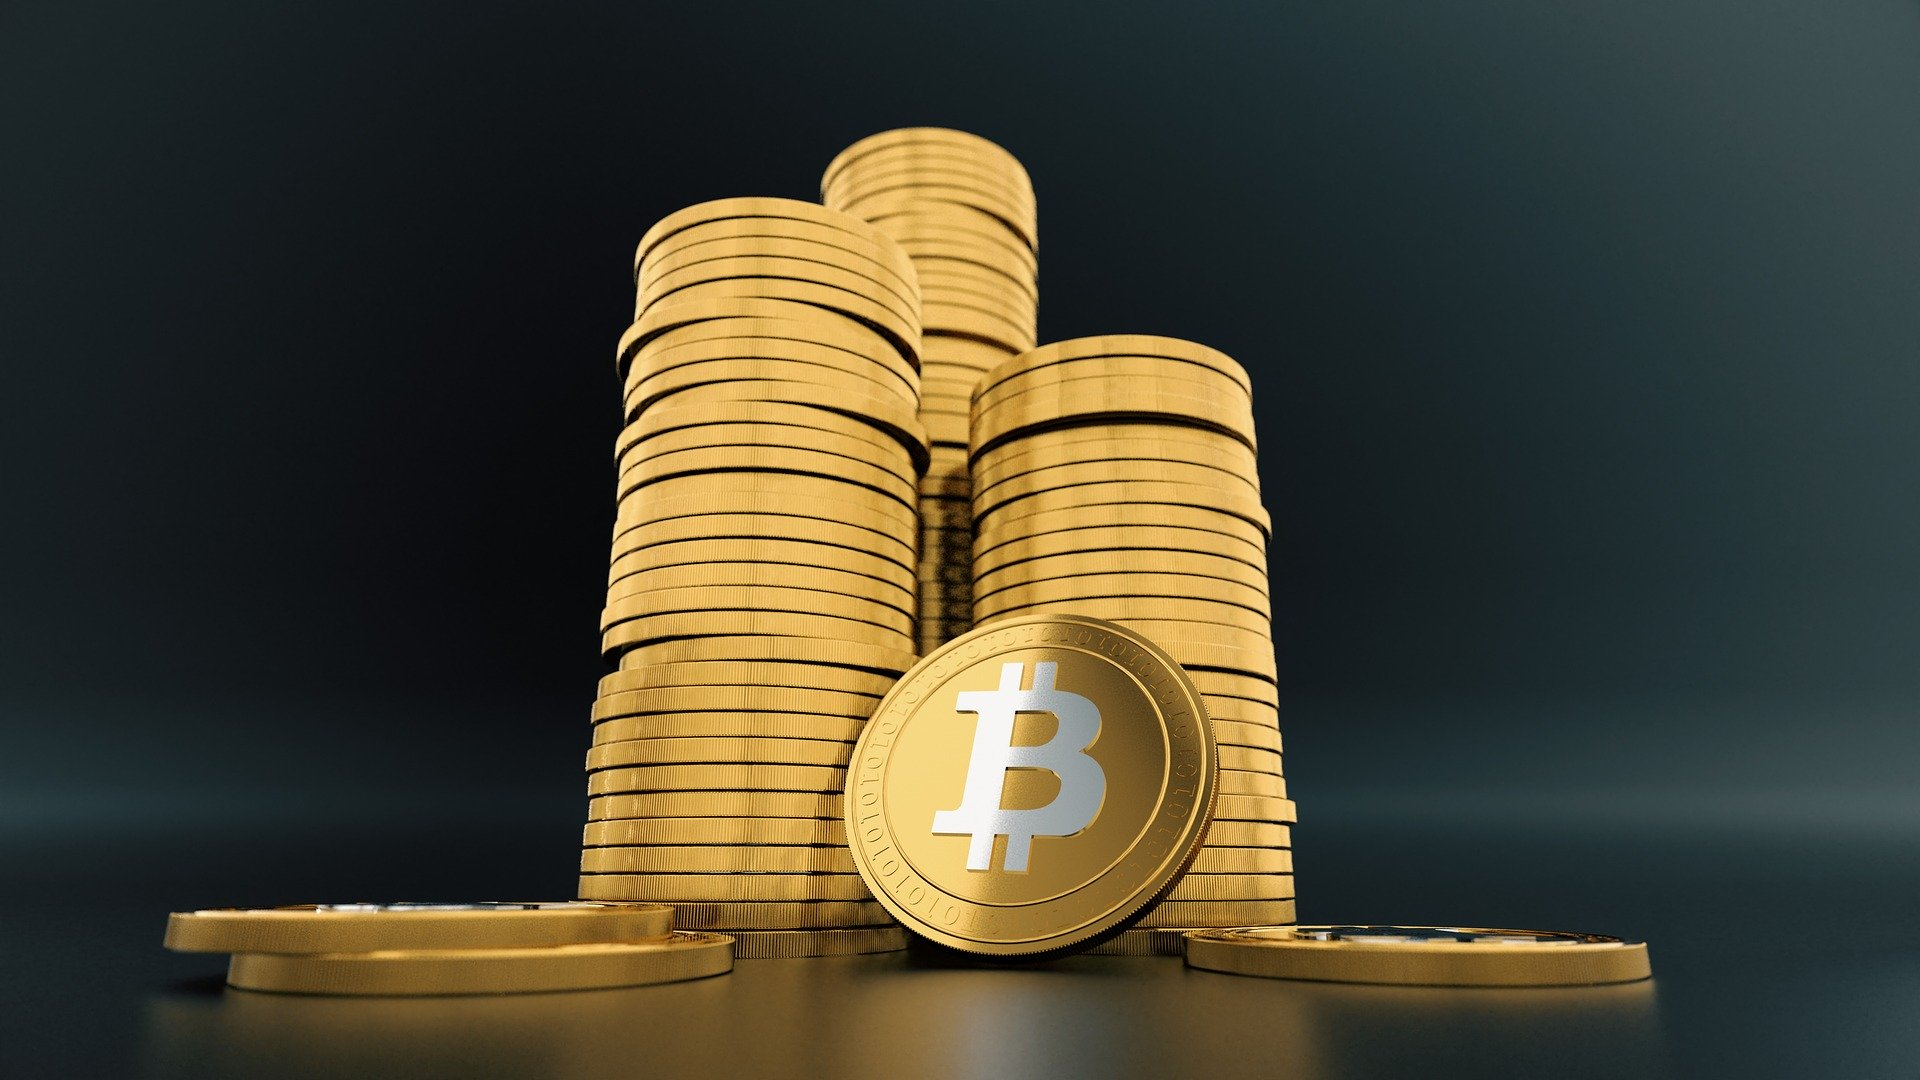 Cryptocurrencies experience collective rise